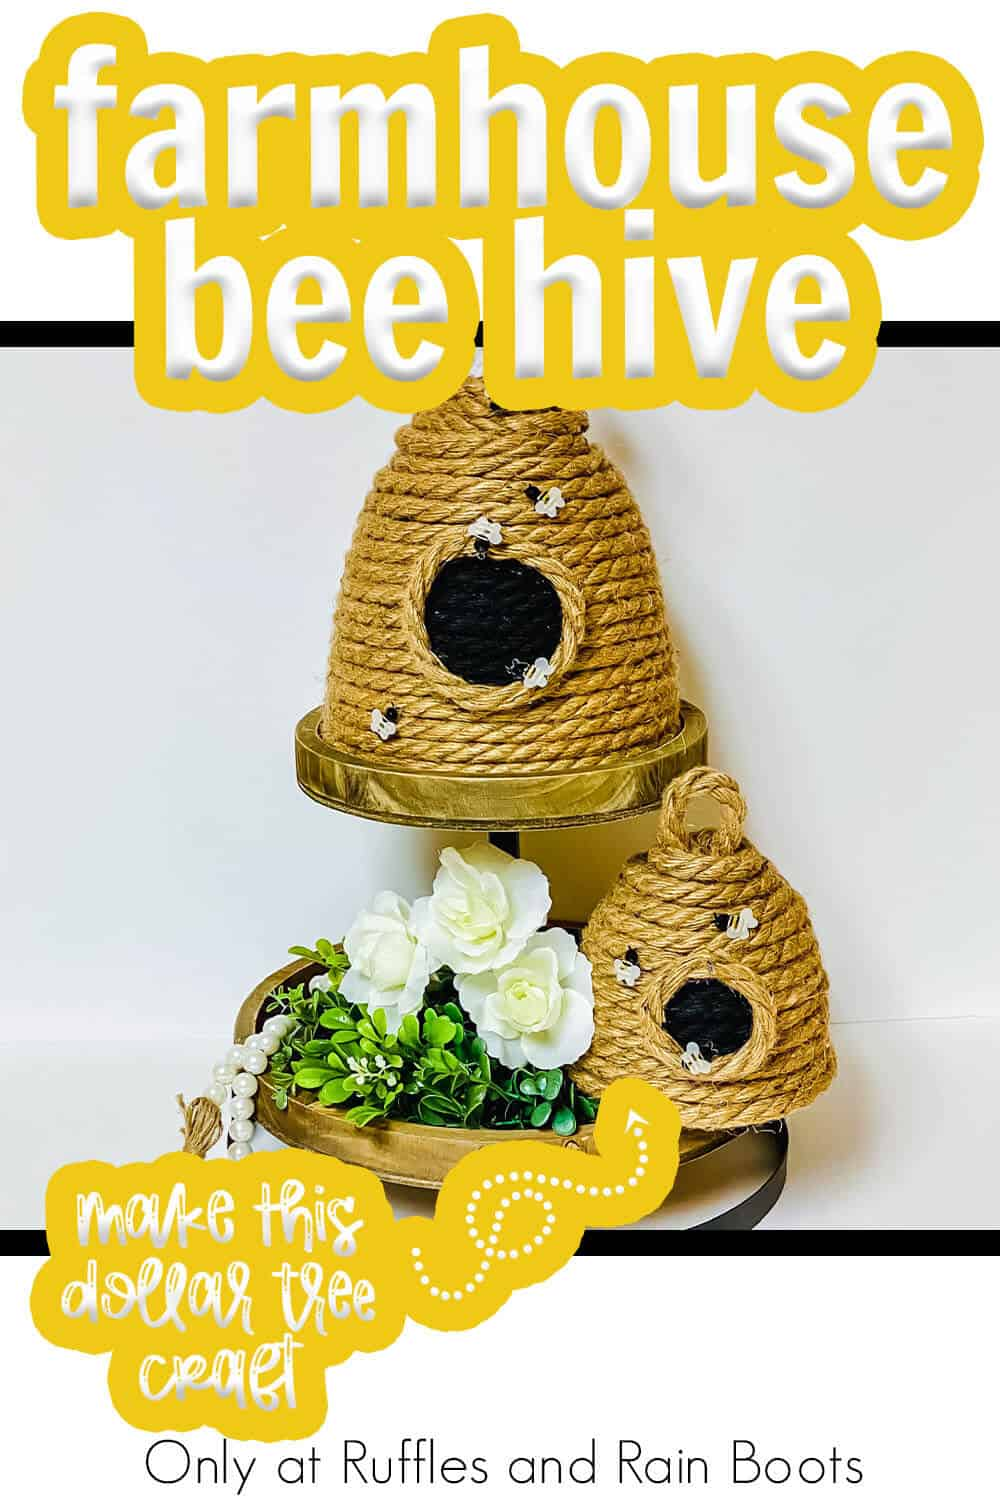 farmhouse tiered tray bee hive craft with text which reads farmhouse bee hive make this dollar tree craft